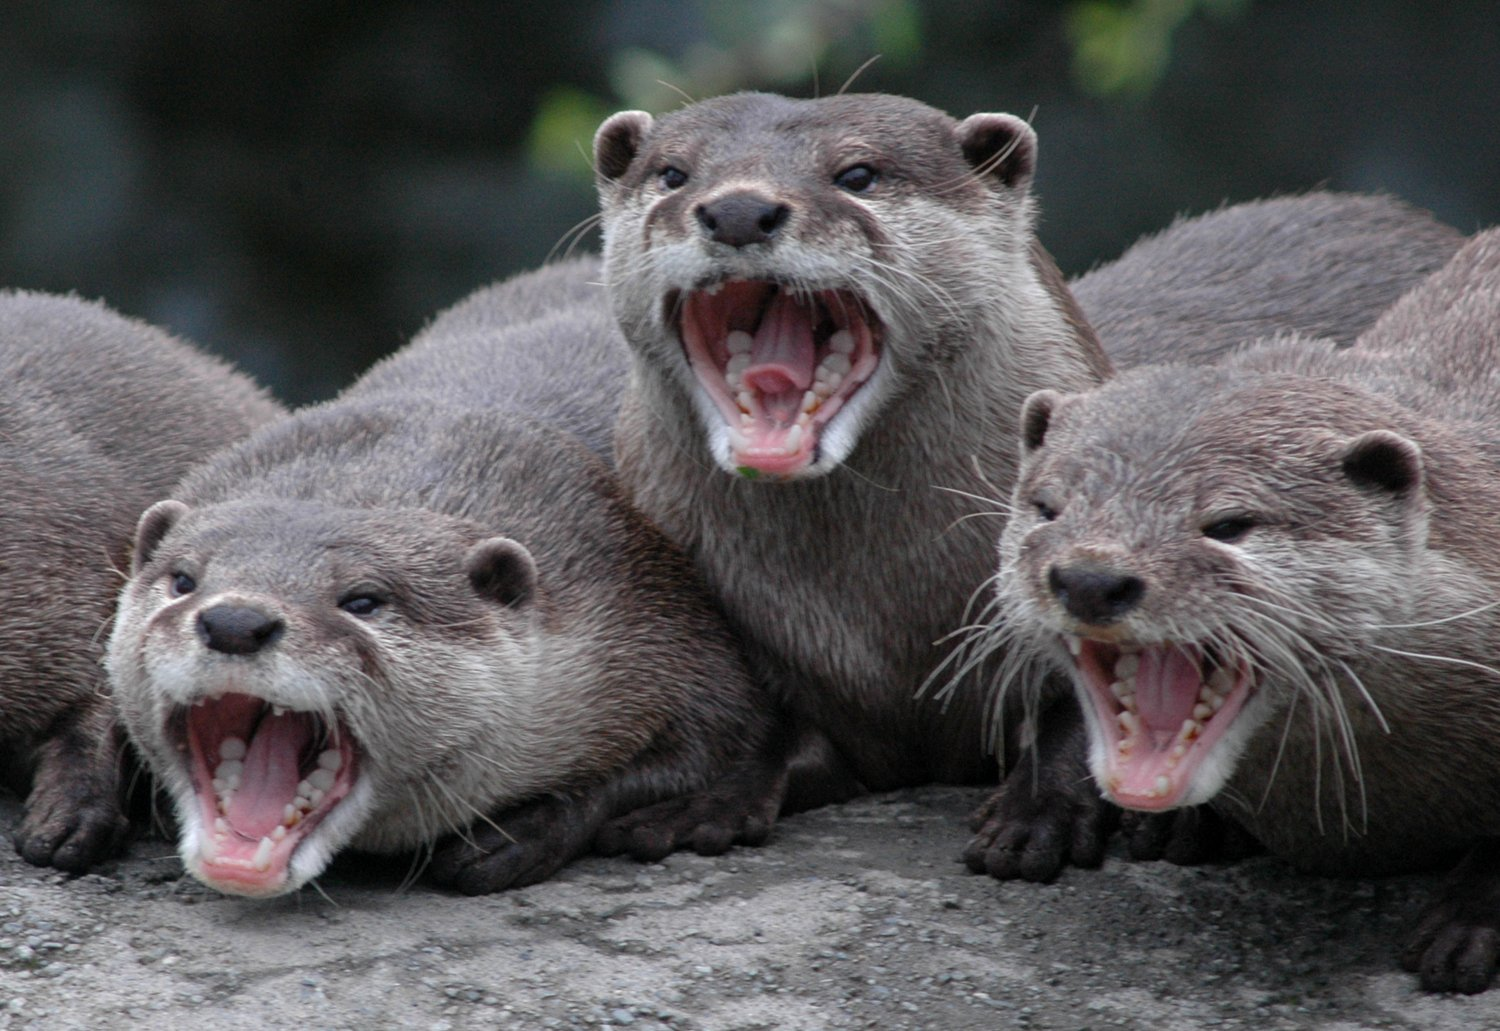 Free Laughing Otters Stock Photo - FreeImages.com - photo#31